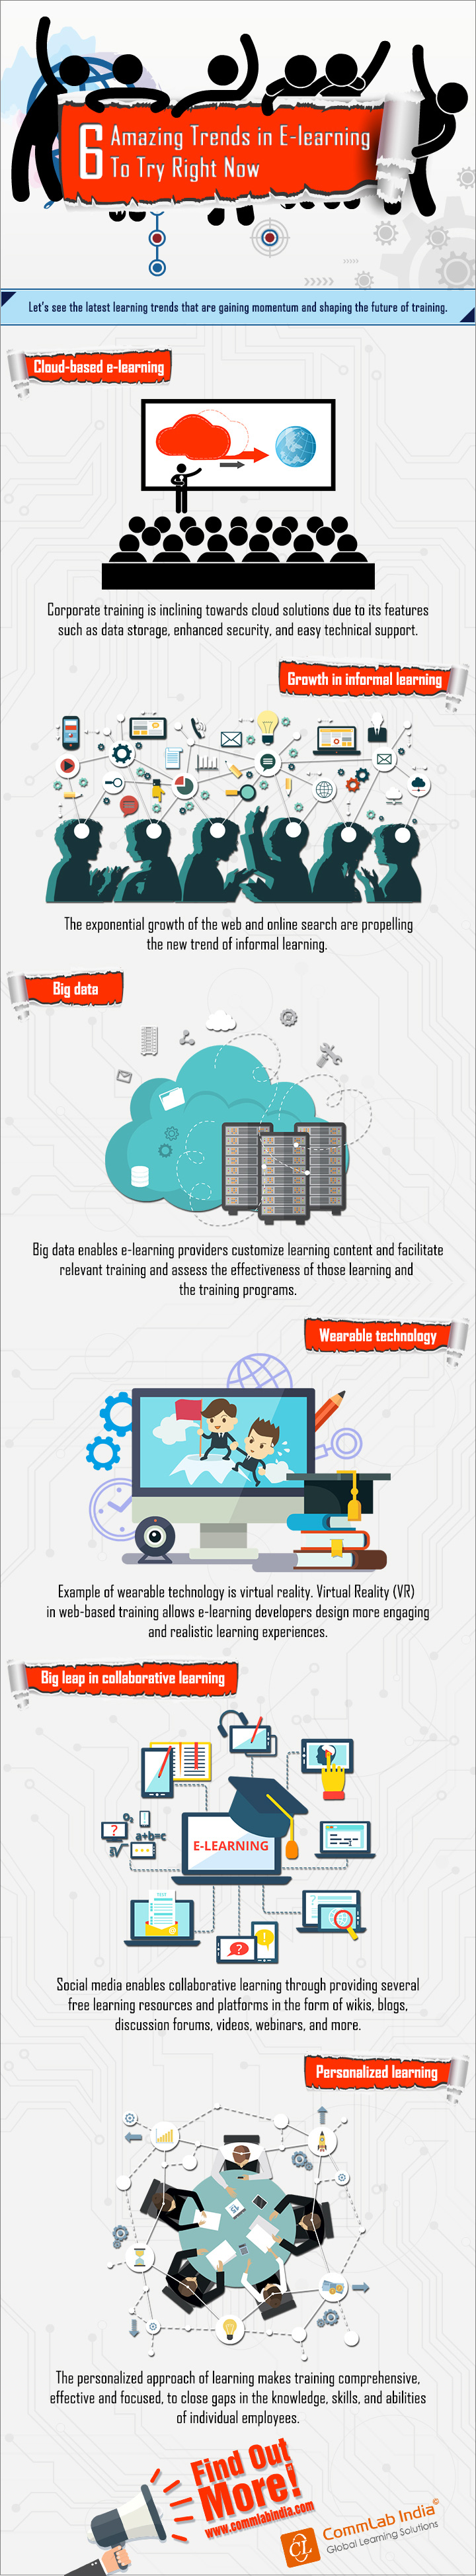 6 Amazing Trends in E-learning to Try Right Now [Infographic]